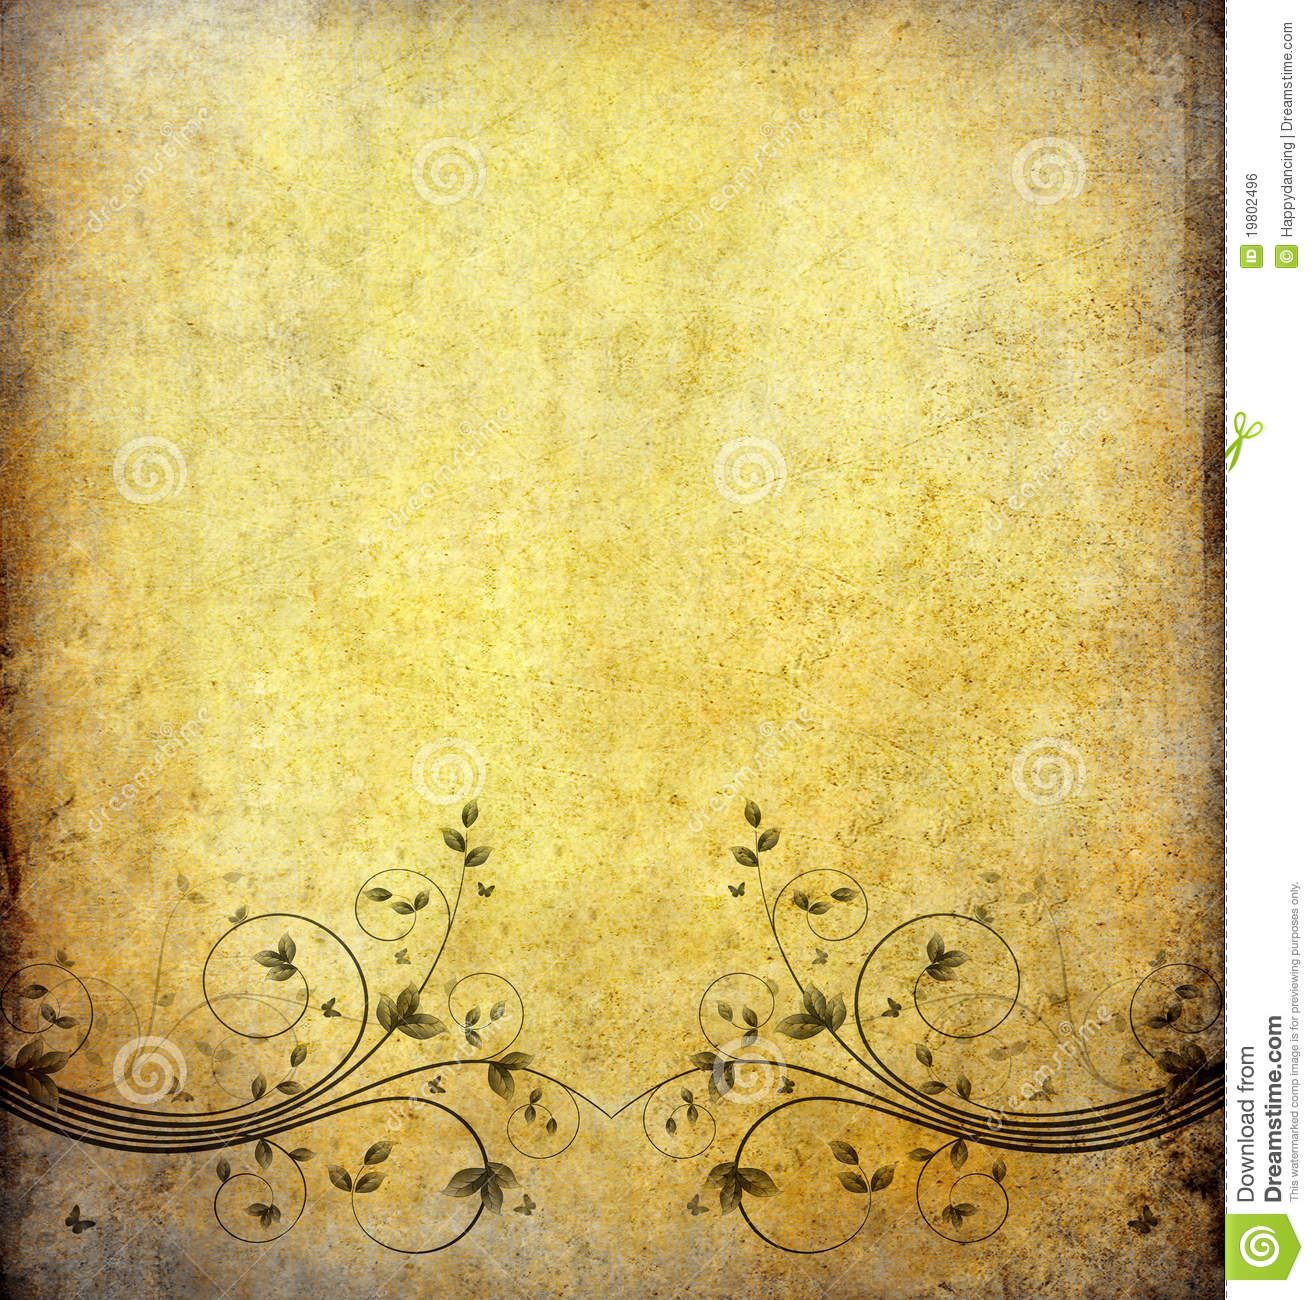 Old Paper Wallpaper: Old Grunge Paper With Vintage Flower Stock Illustration